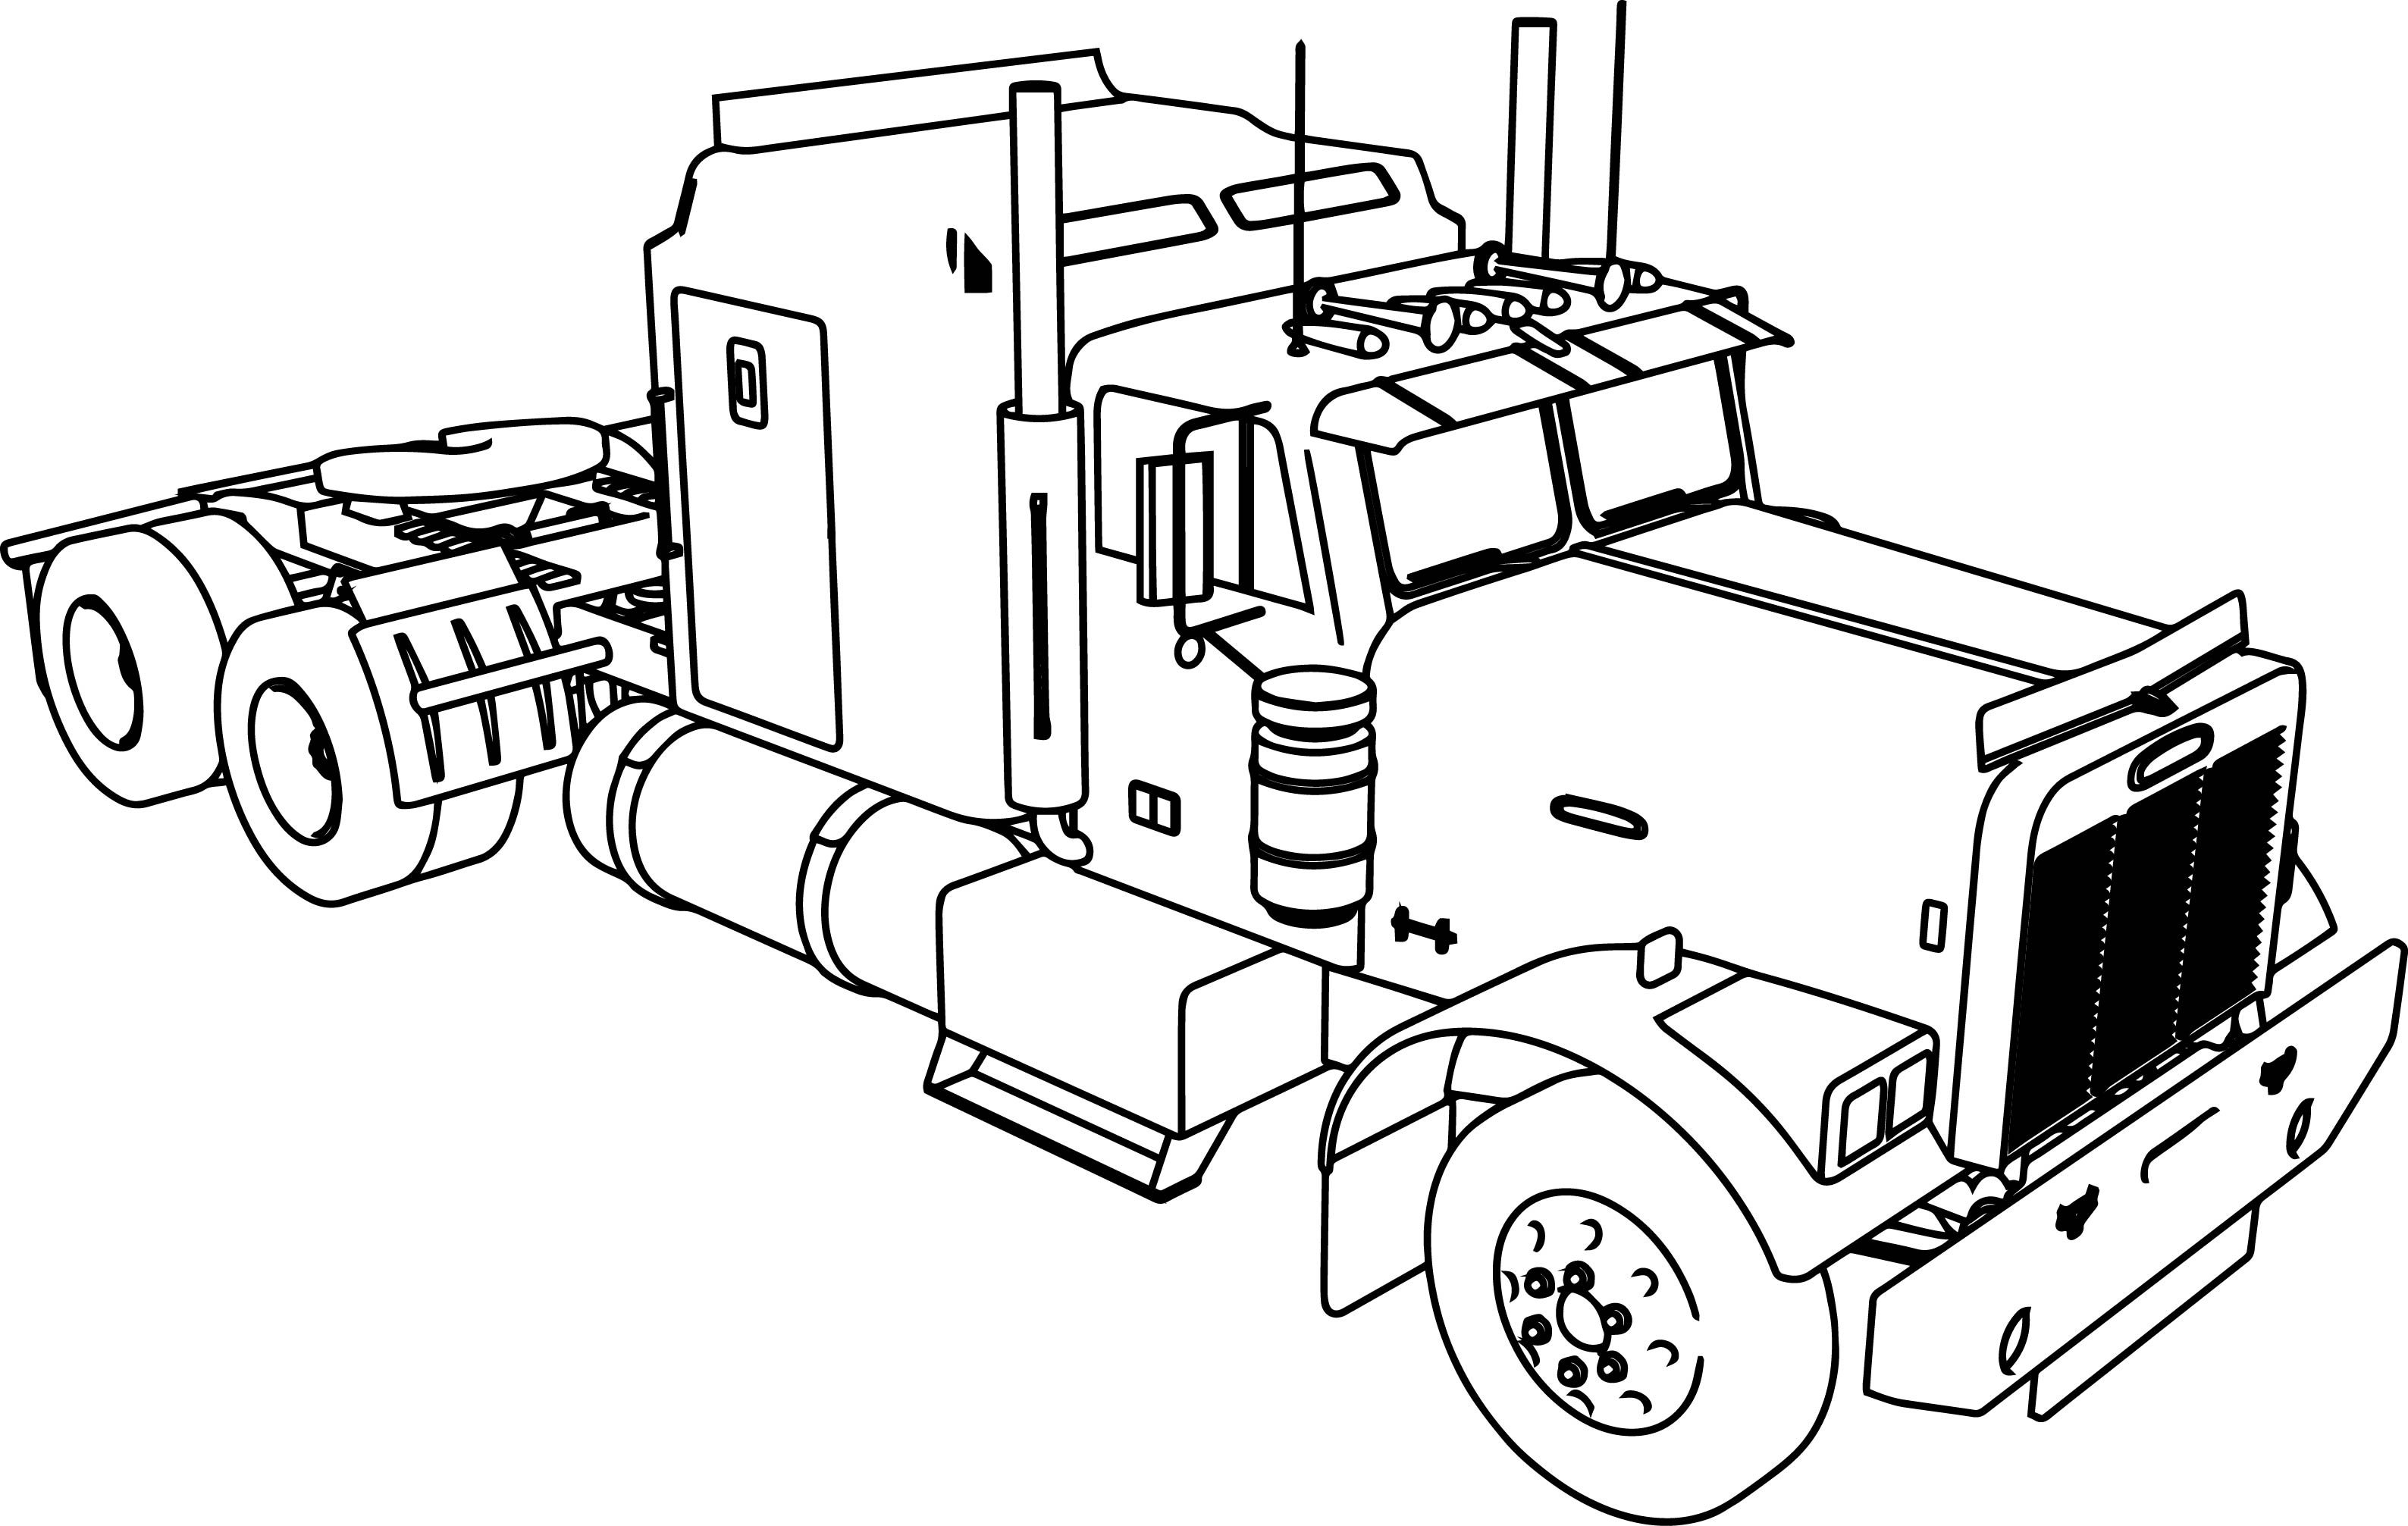 8n539 Freightliner Columbia Experiencing Electrical Short also International Pro Star Headlight Wiring Diagram also Long Trailer Truck Coloring Page further 379 1992 Peterbilt Fuse Box further Cars And Trucks Free Printable Coloring Pages. on new kenworth trucks